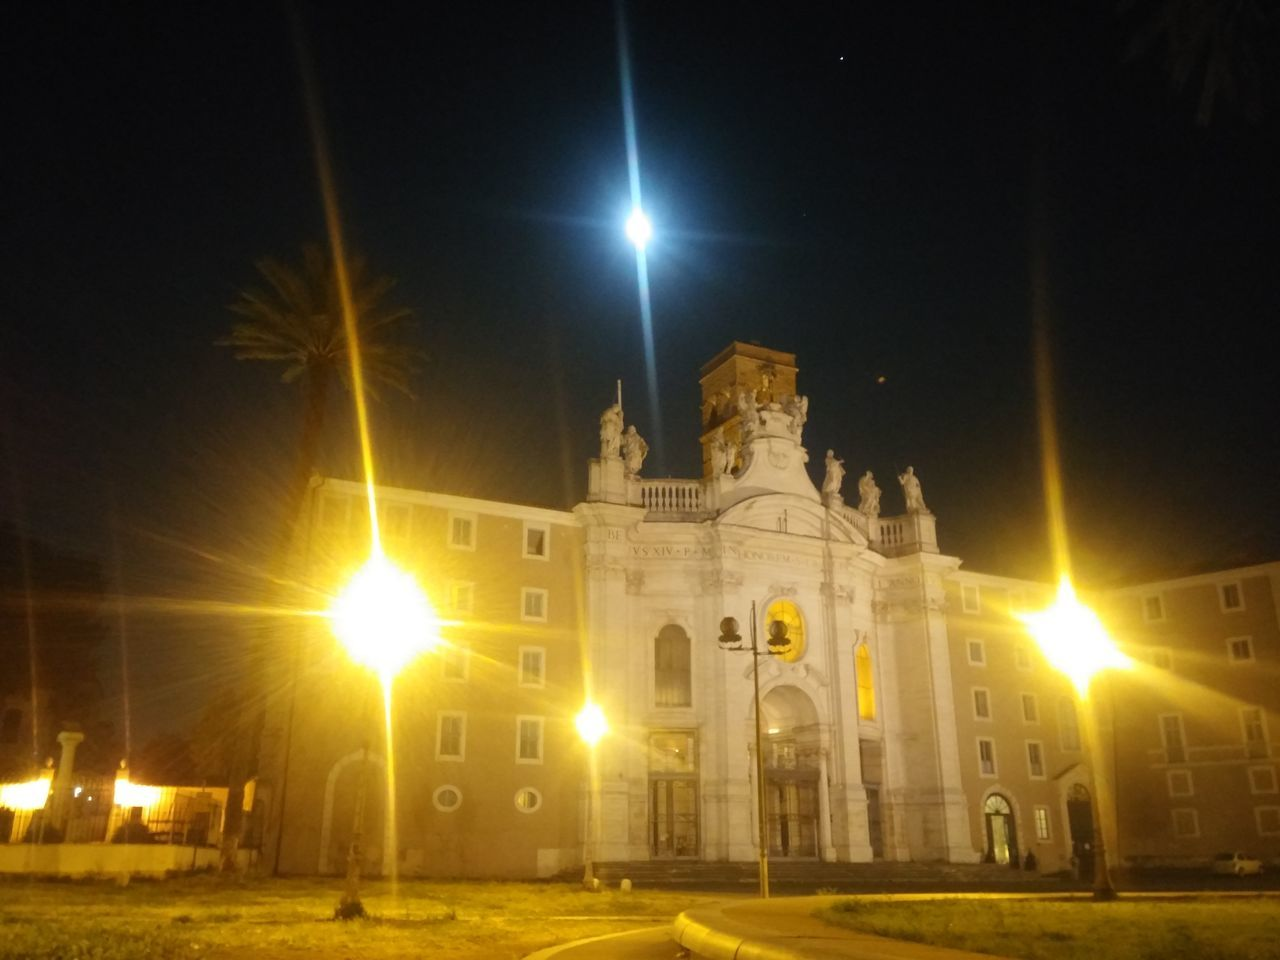 Rome Italy🇮🇹 Rome By Night Basilica Di S. Croce In Gerusalemme Night Illuminated Architecture History City Nightlife Outdoors No People Nightlights Night Shot Nightphotography Outdoor Photography Myownphotography Nofilter